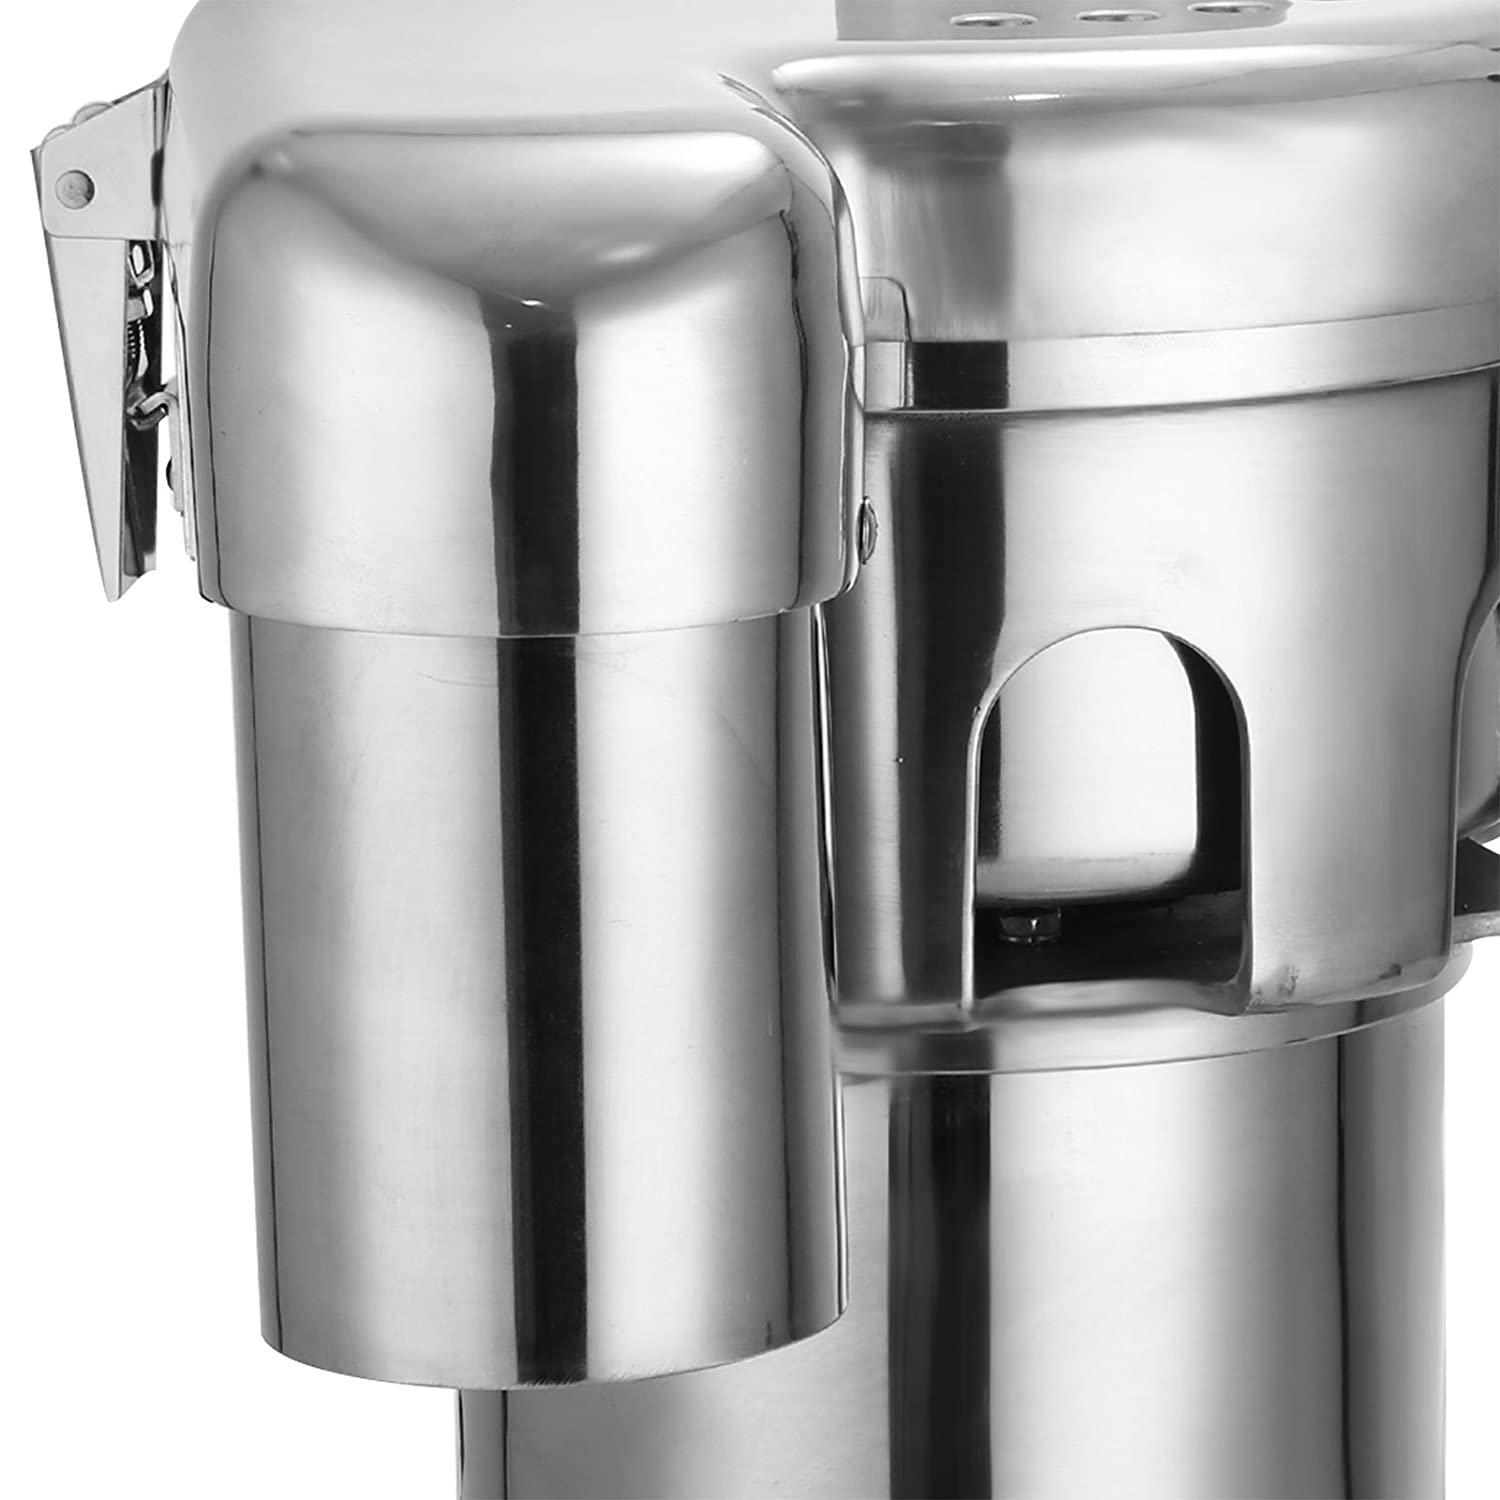 VEVOR Juice Extractor 550W Commercial Juice Extractor 264lbs// hr Capacity Centrifugal Juicer Stainless Steel Extractor Machine Heavy Duty Professional 550W